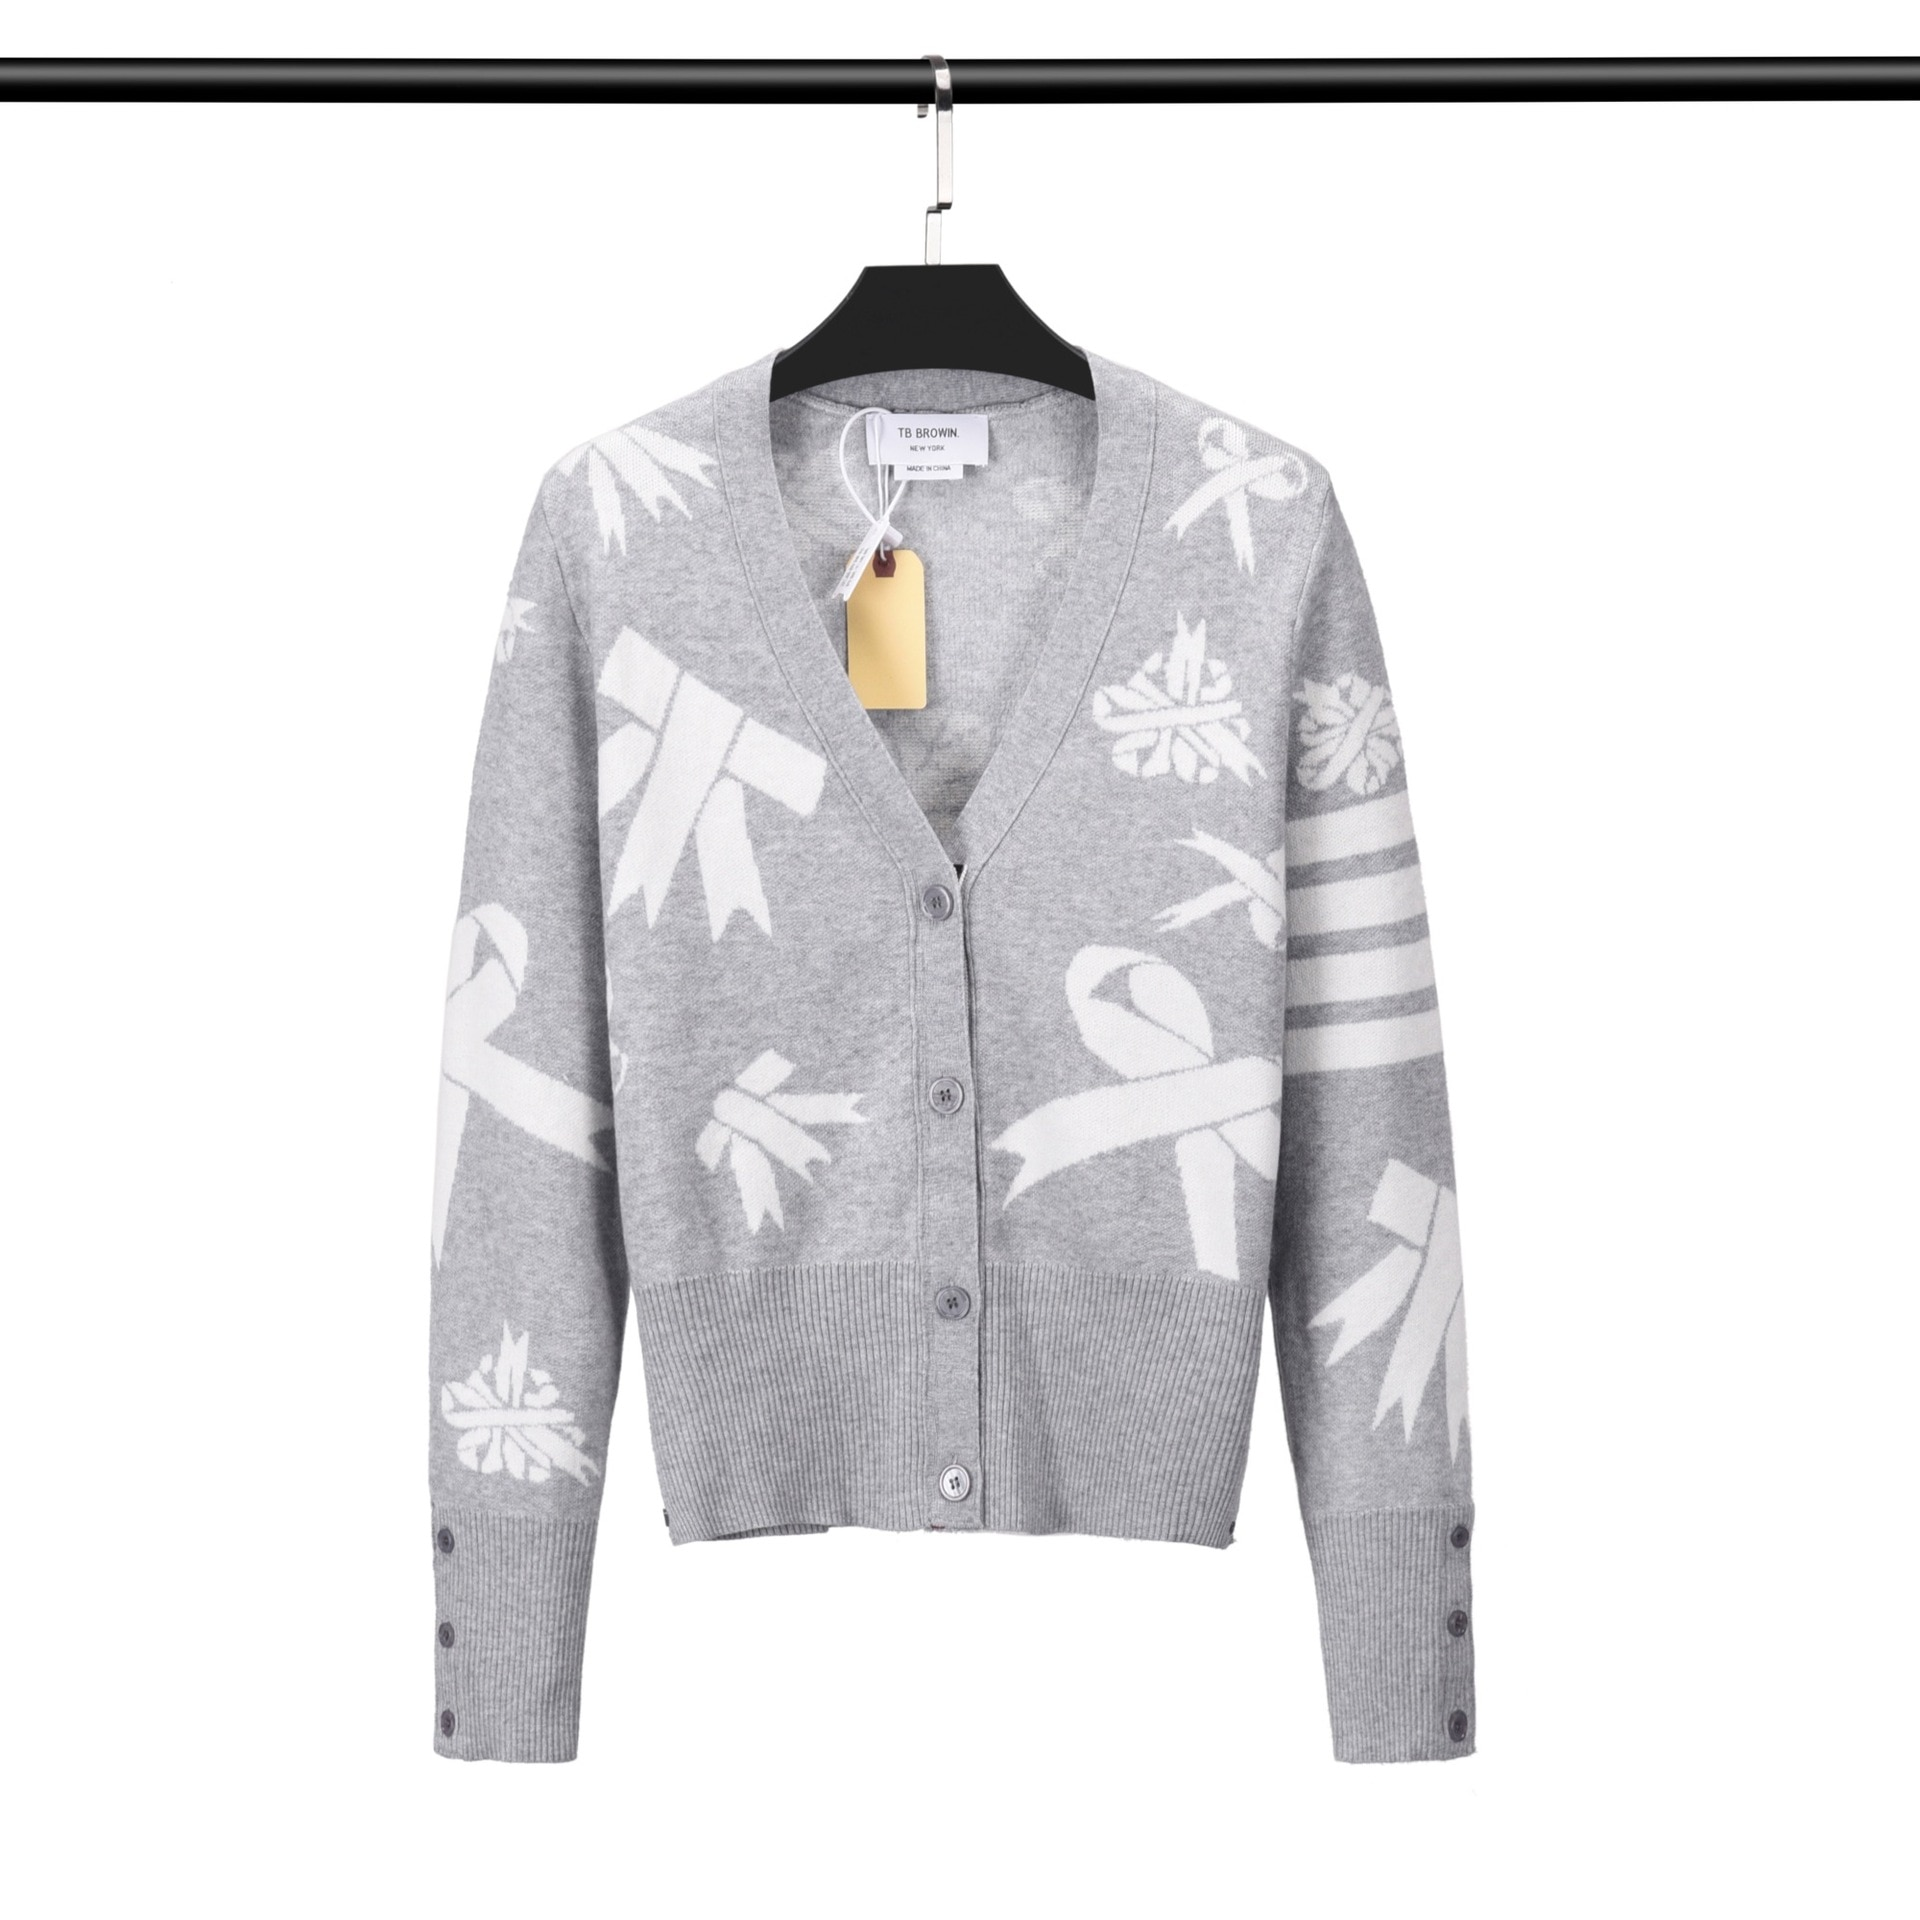 THOM BRUN's new TB women's jacquard bow patterned knit coat is a refreshing and sweet look enlarge